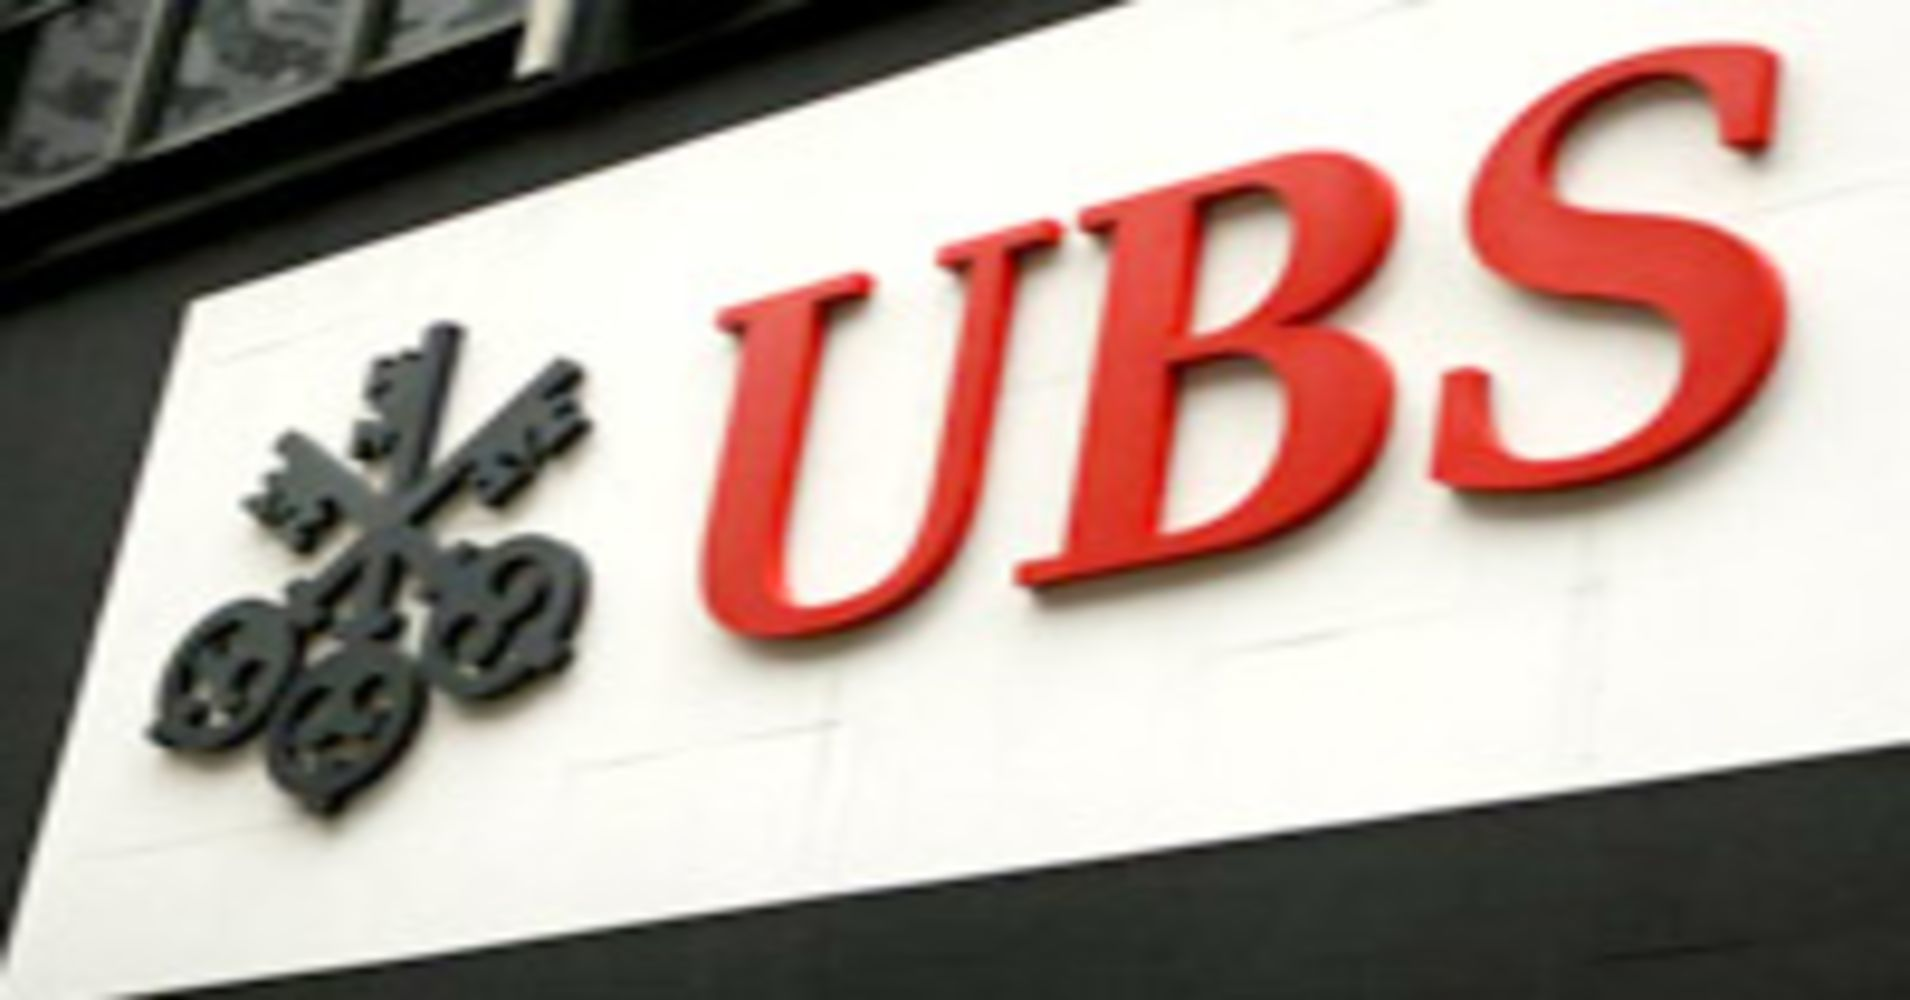 W Va , 39 other states reach $68 million deal with UBS over interest